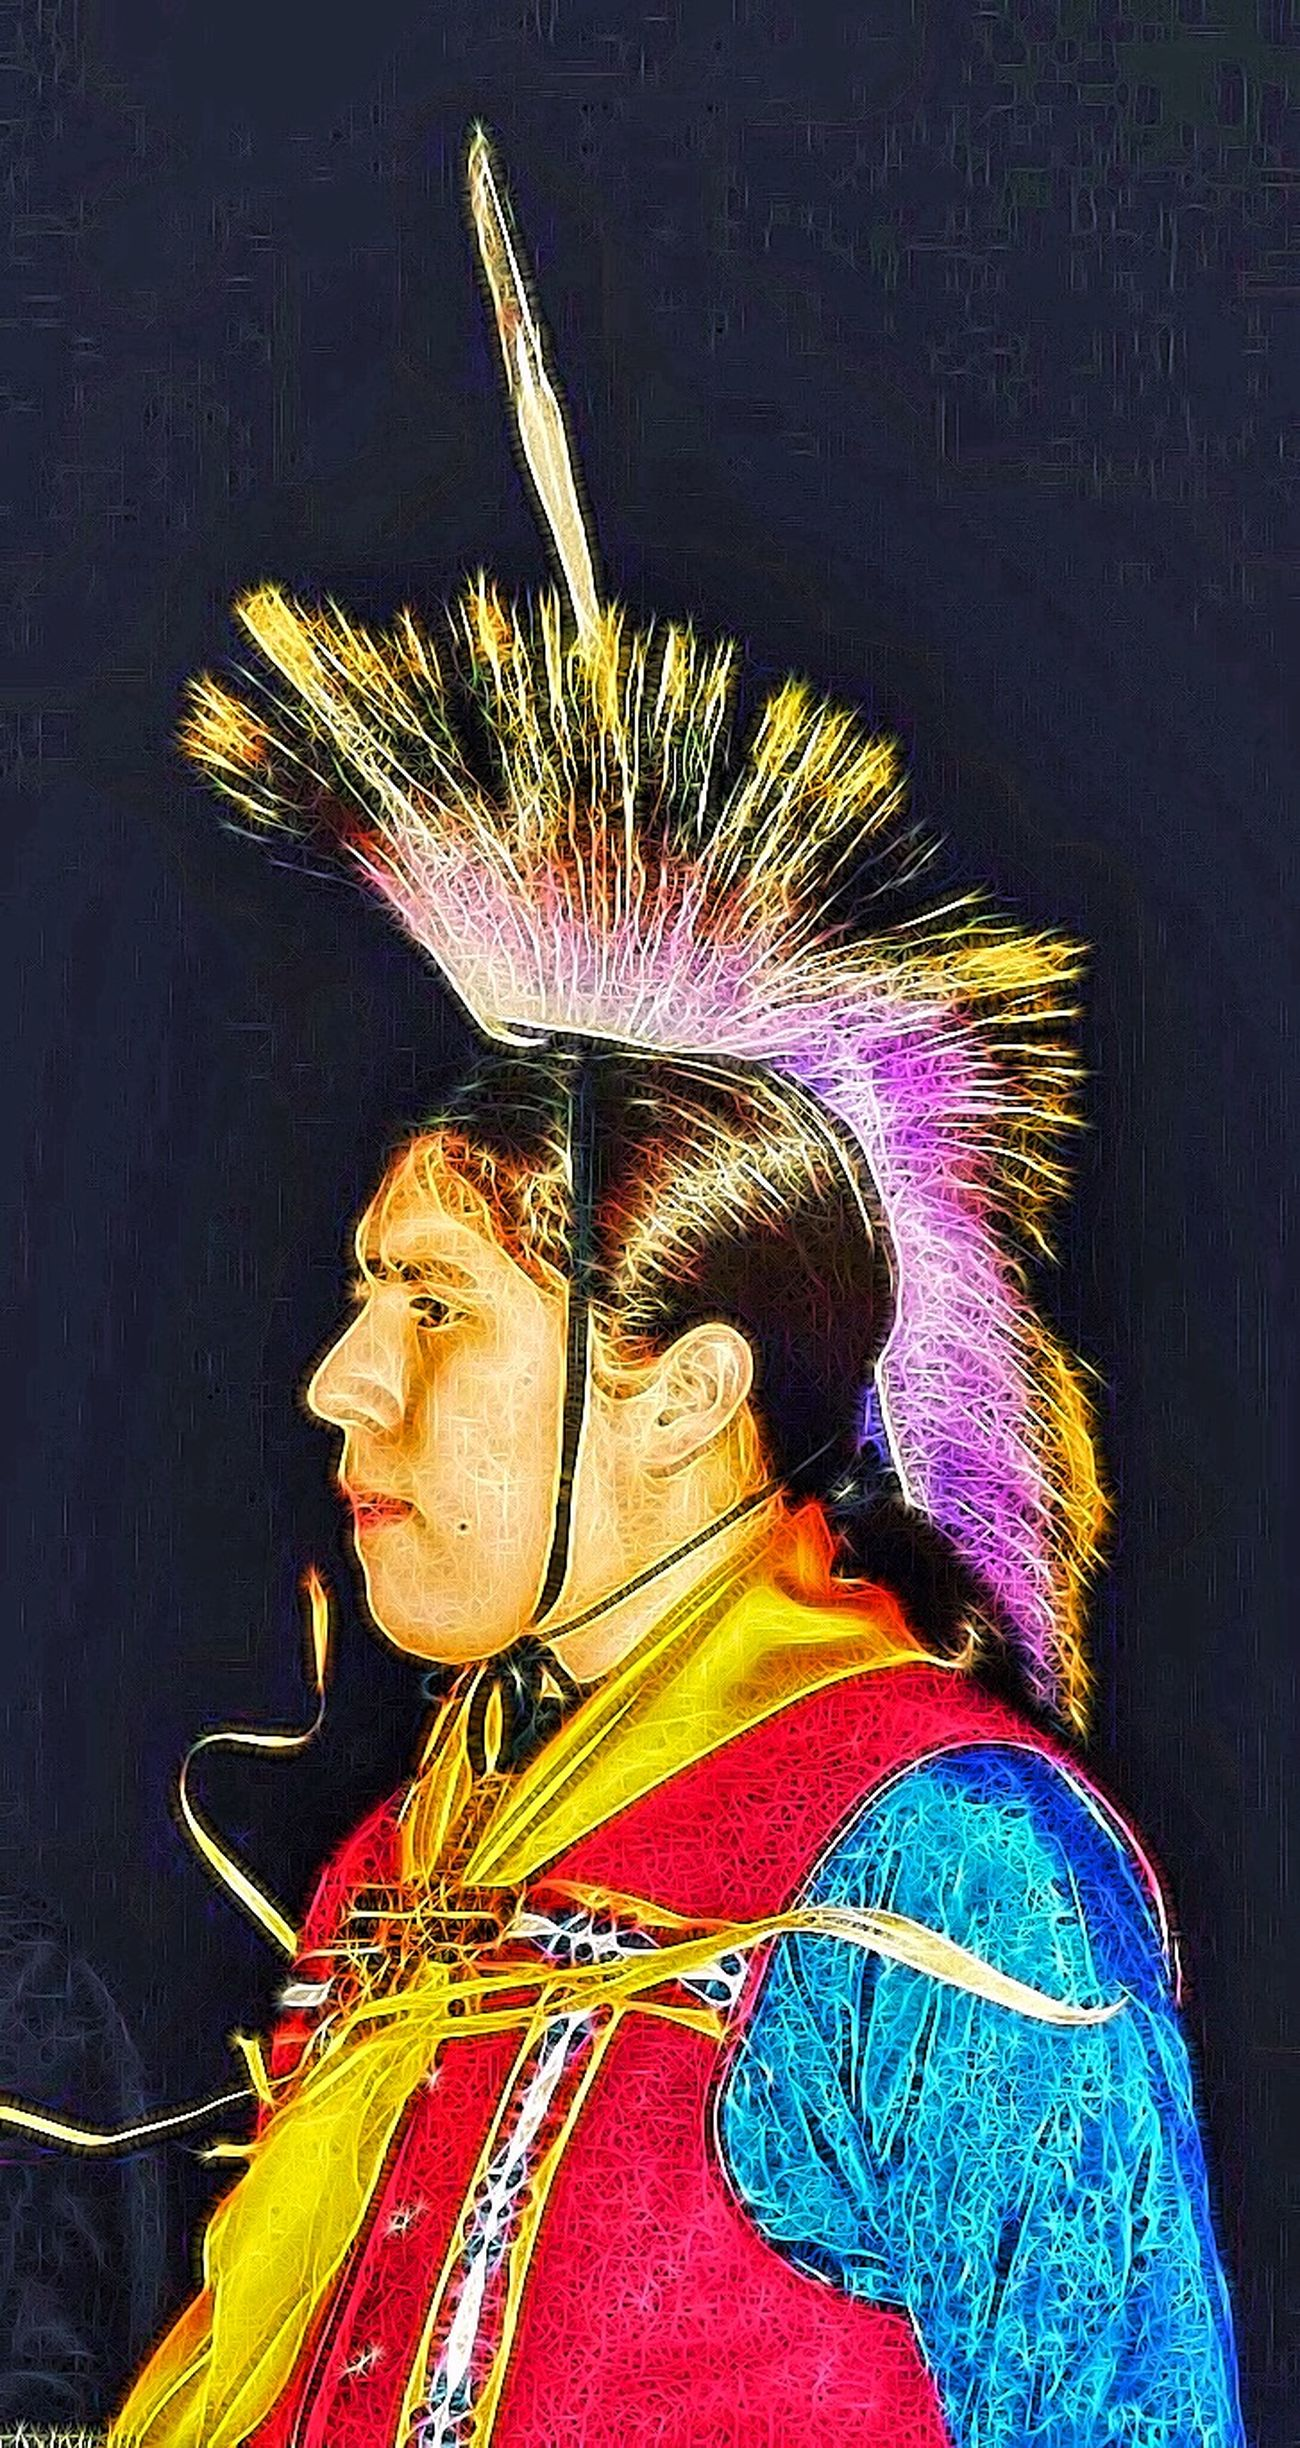 Native Pride Native American Indian Native American Native Native Dancer Proud Cultural Heritage Artistic Photography Nightphotography Authentic Moments Proud Moment